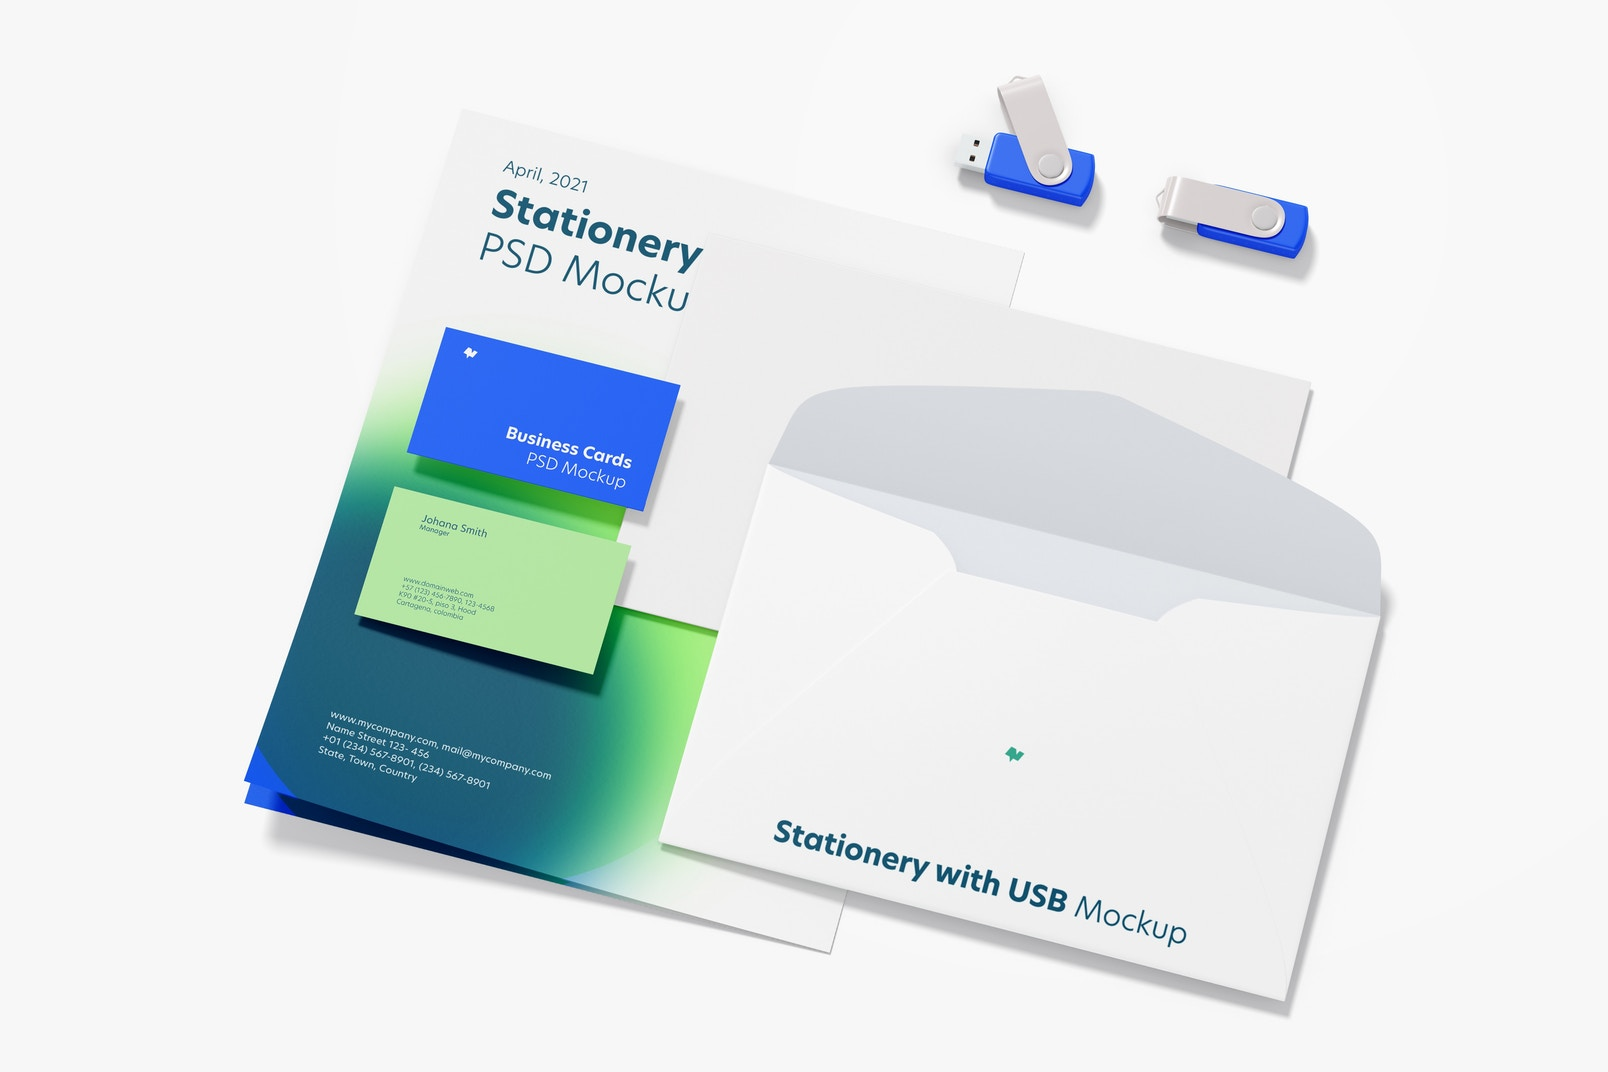 Stationery with USB Flash Drives Mockup 02